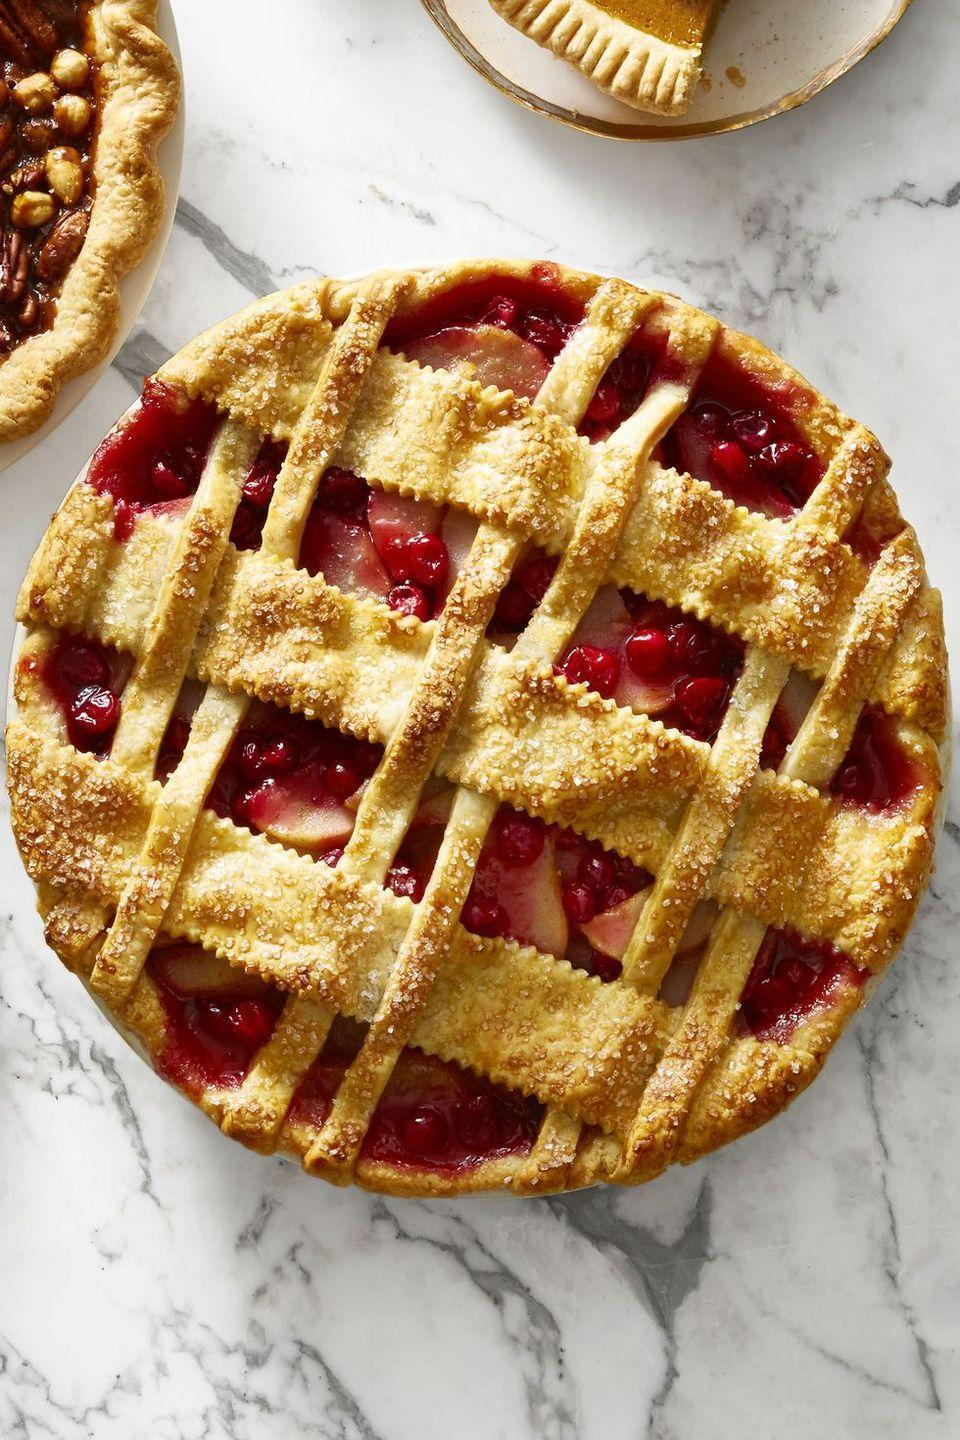 """<p>Alternate thick and thin strips of pie dough for a unique lattice pattern that's almost too pretty to eat ... almost.</p><p><em><a href=""""https://www.goodhousekeeping.com/food-recipes/dessert/a46629/cranberry-pear-lattice-pie-recipe/"""" rel=""""nofollow noopener"""" target=""""_blank"""" data-ylk=""""slk:Get the recipe for Cranberry-Pear Lattice Pie »"""" class=""""link rapid-noclick-resp"""">Get the recipe for Cranberry-Pear Lattice Pie »</a></em></p><p><strong>RELATED: </strong><a href=""""https://www.goodhousekeeping.com/holidays/thanksgiving-ideas/g29192000/cranberry-desserts/"""" rel=""""nofollow noopener"""" target=""""_blank"""" data-ylk=""""slk:18 Easy Cranberry Dessert Ideas to Wow Your Friends"""" class=""""link rapid-noclick-resp"""">18 Easy Cranberry Dessert Ideas to Wow Your Friends</a><br></p>"""